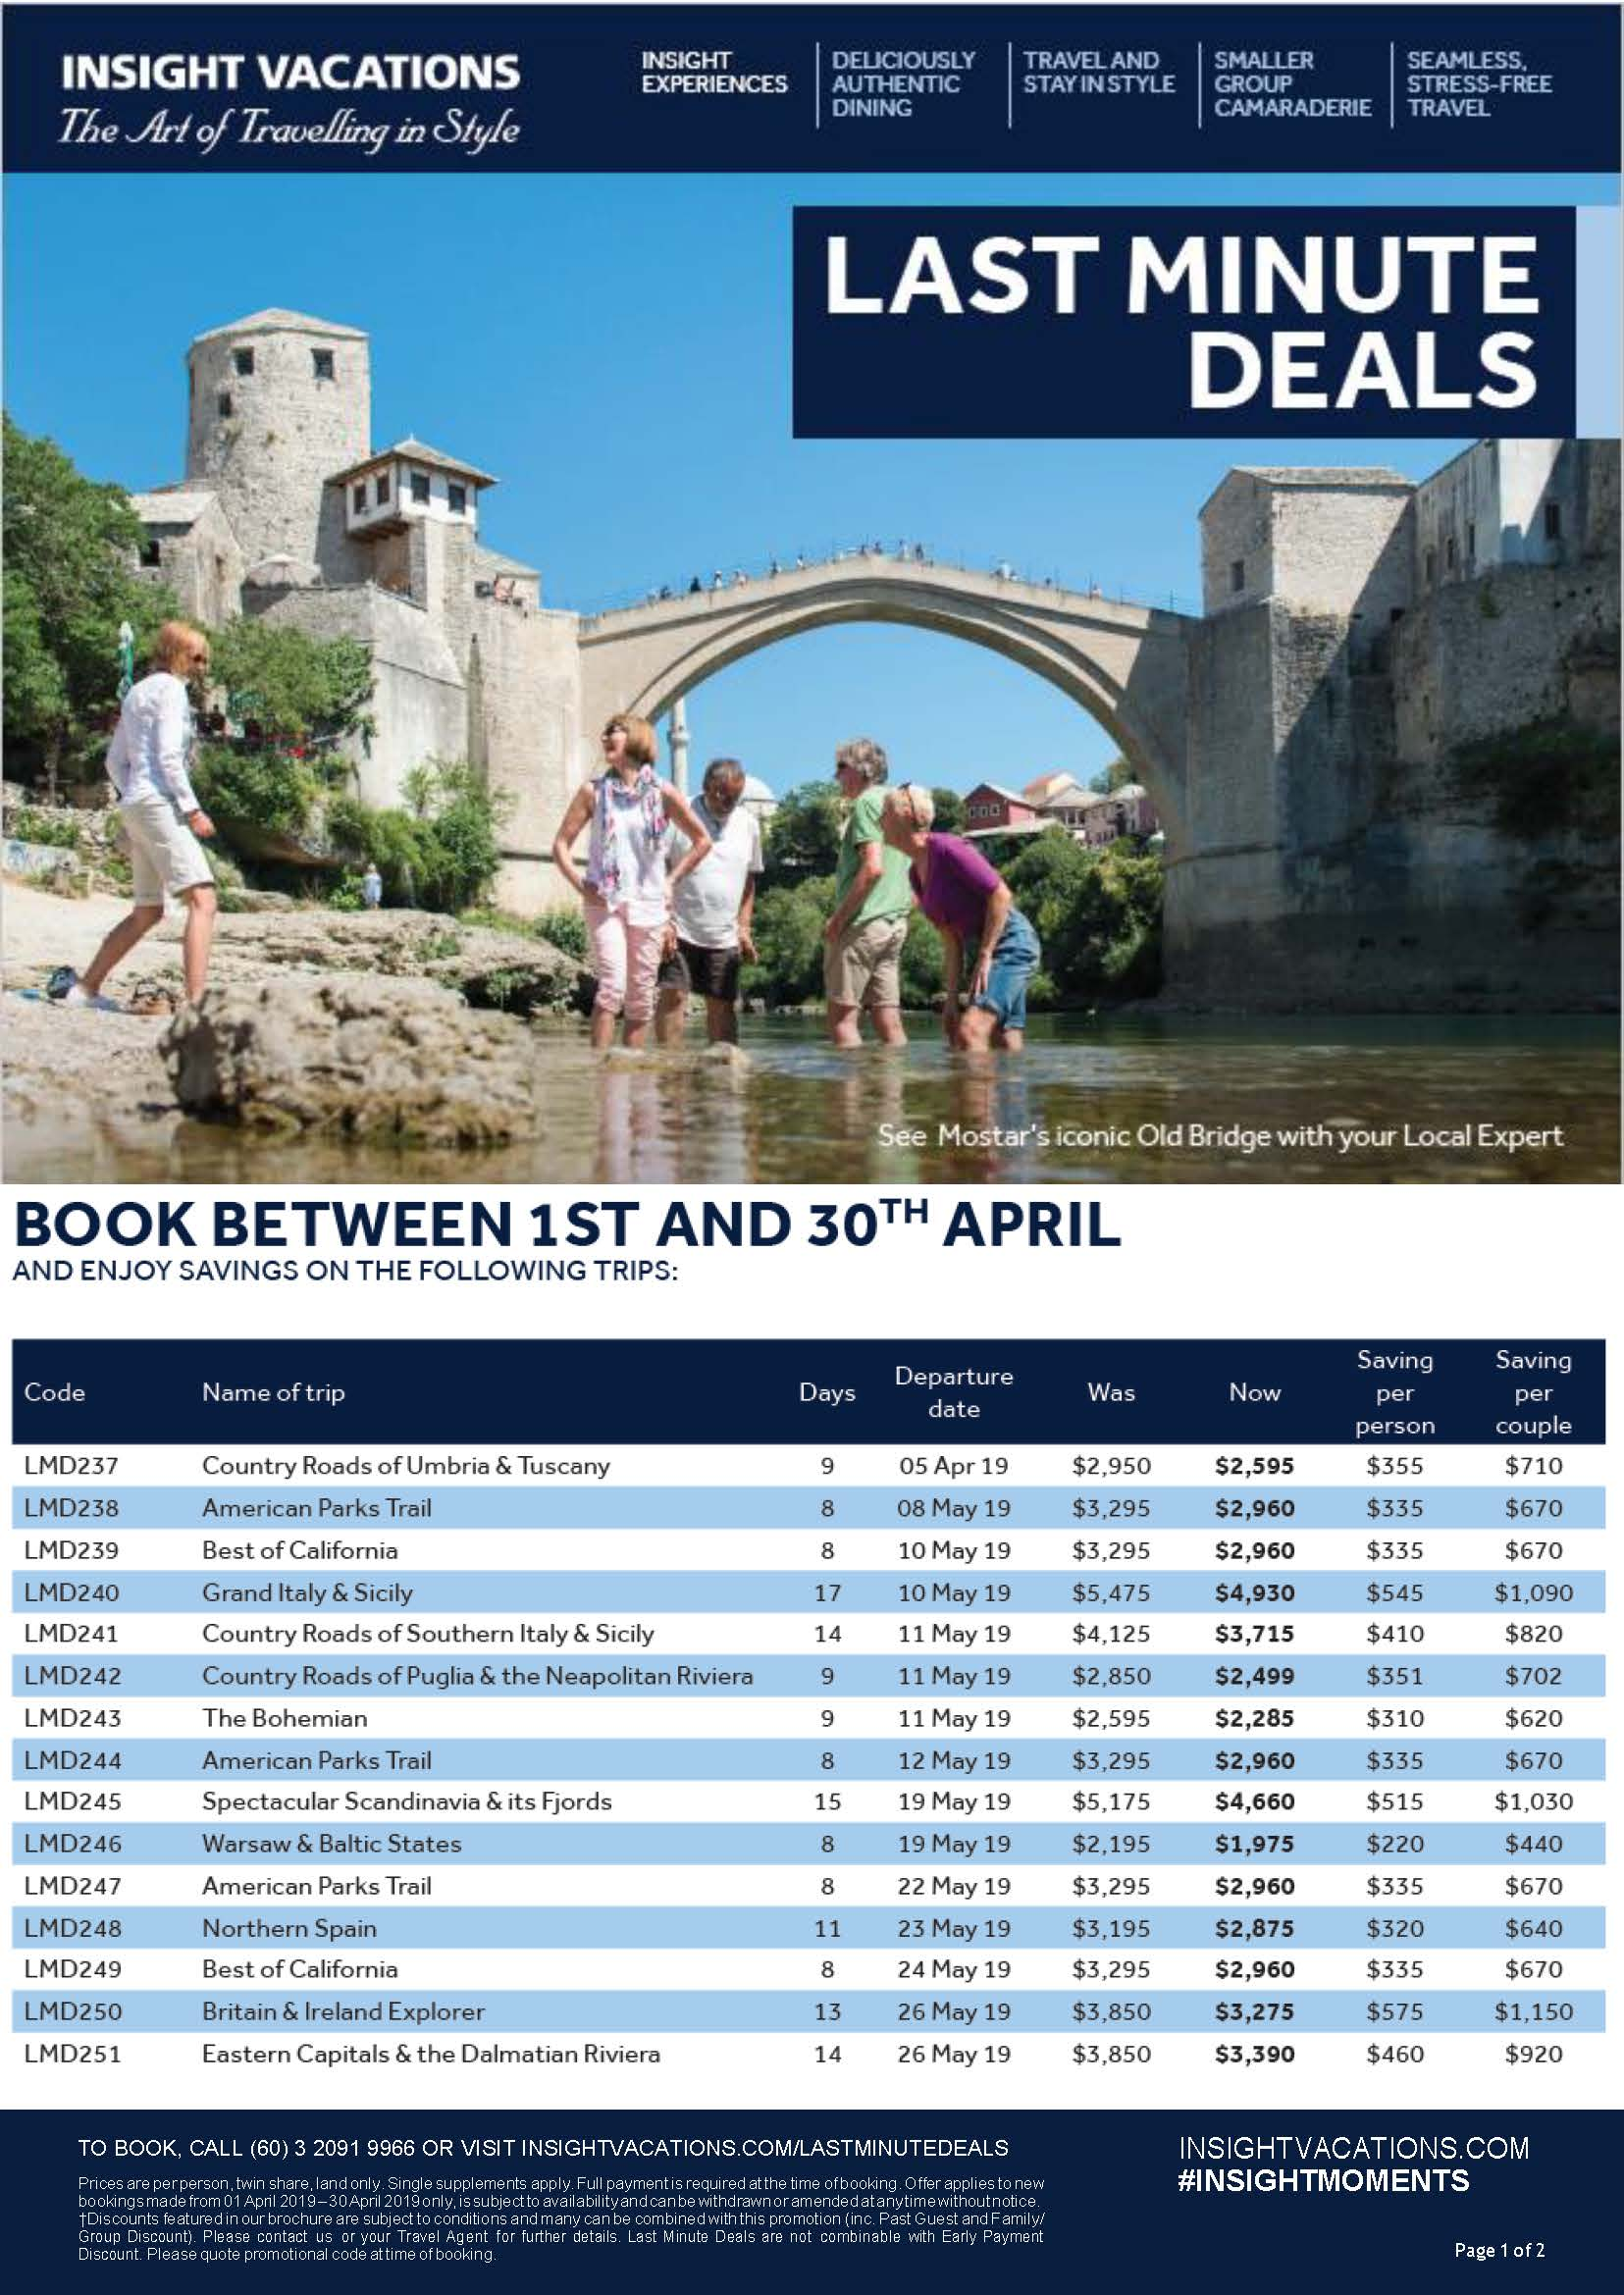 Insight Vacations Last Minute Deals April 2019 IV LMD APR 2019 Page 1